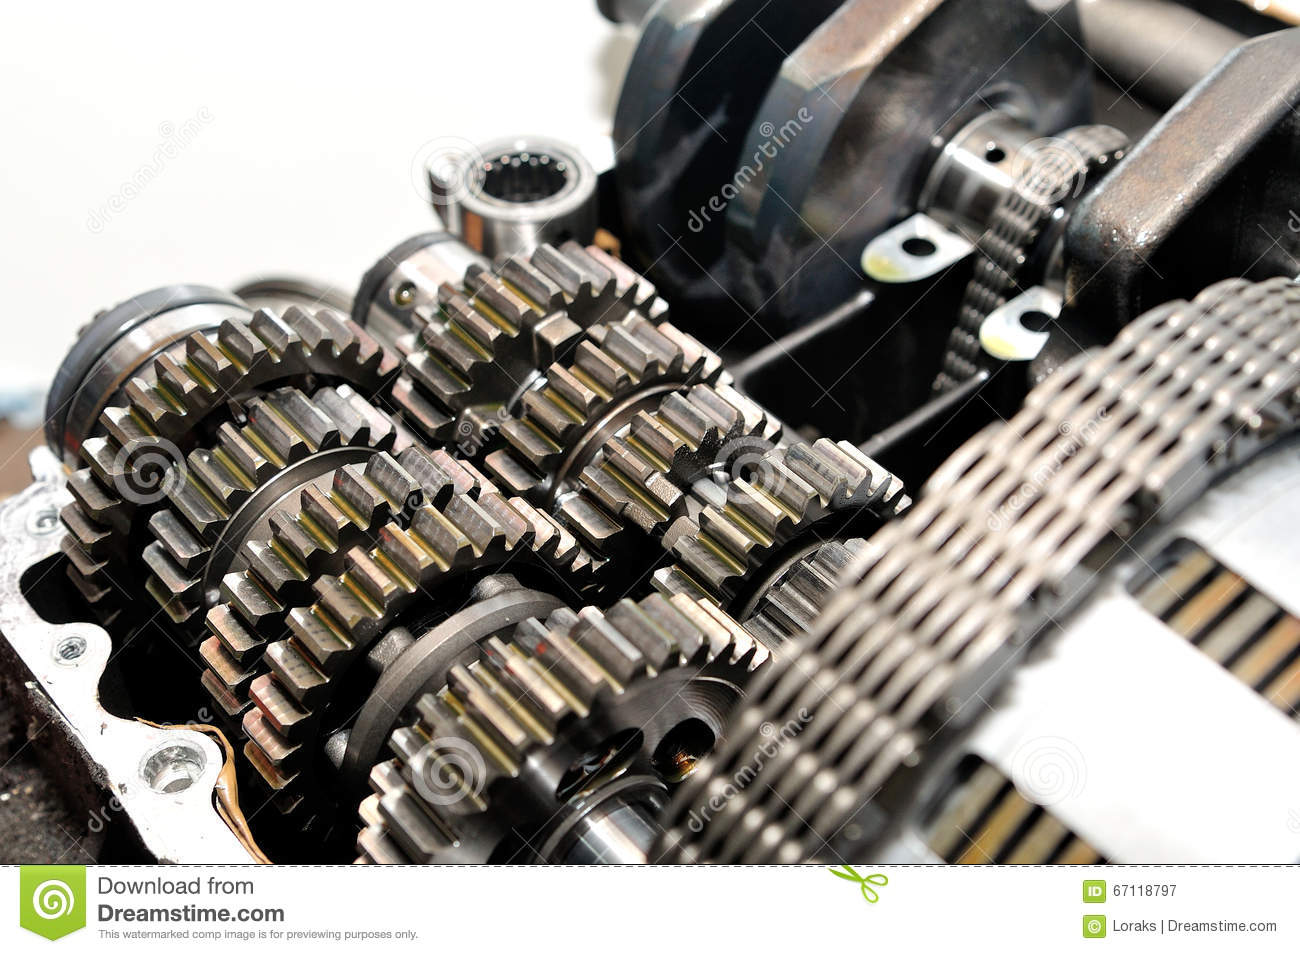 Motorcycle gearbox with clutch in front.